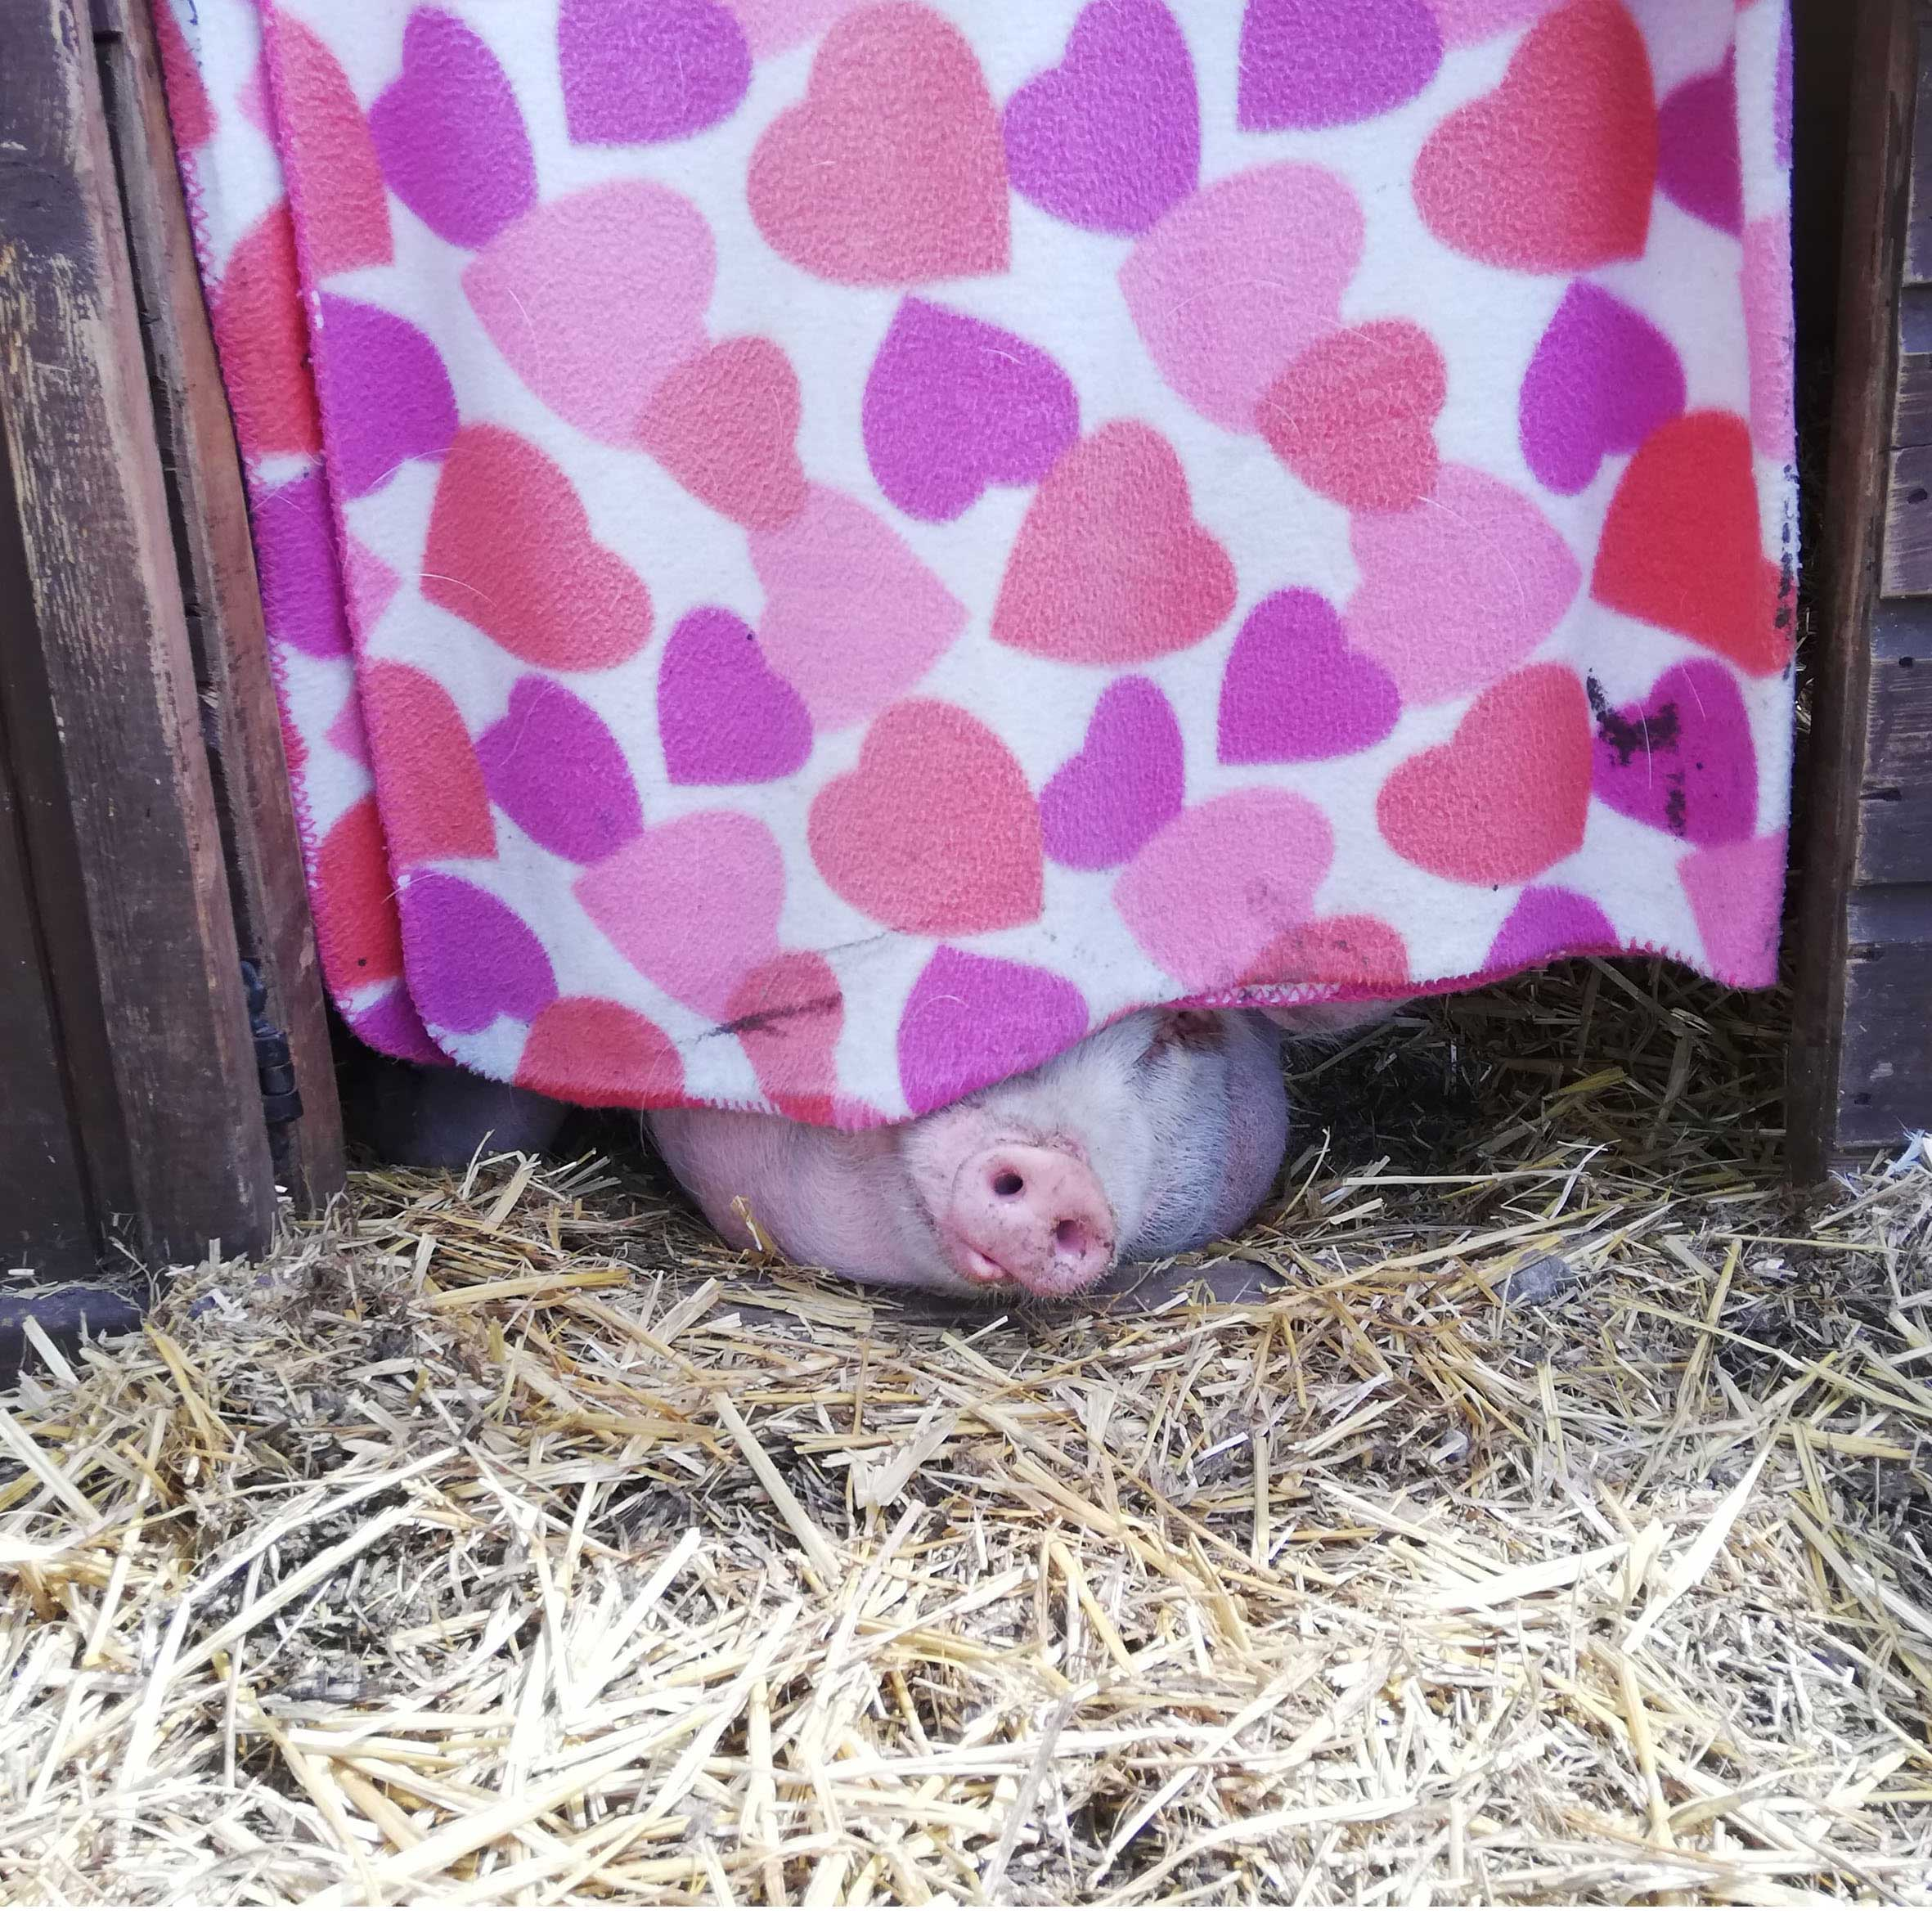 Dolly peeping under her curtain at FARS